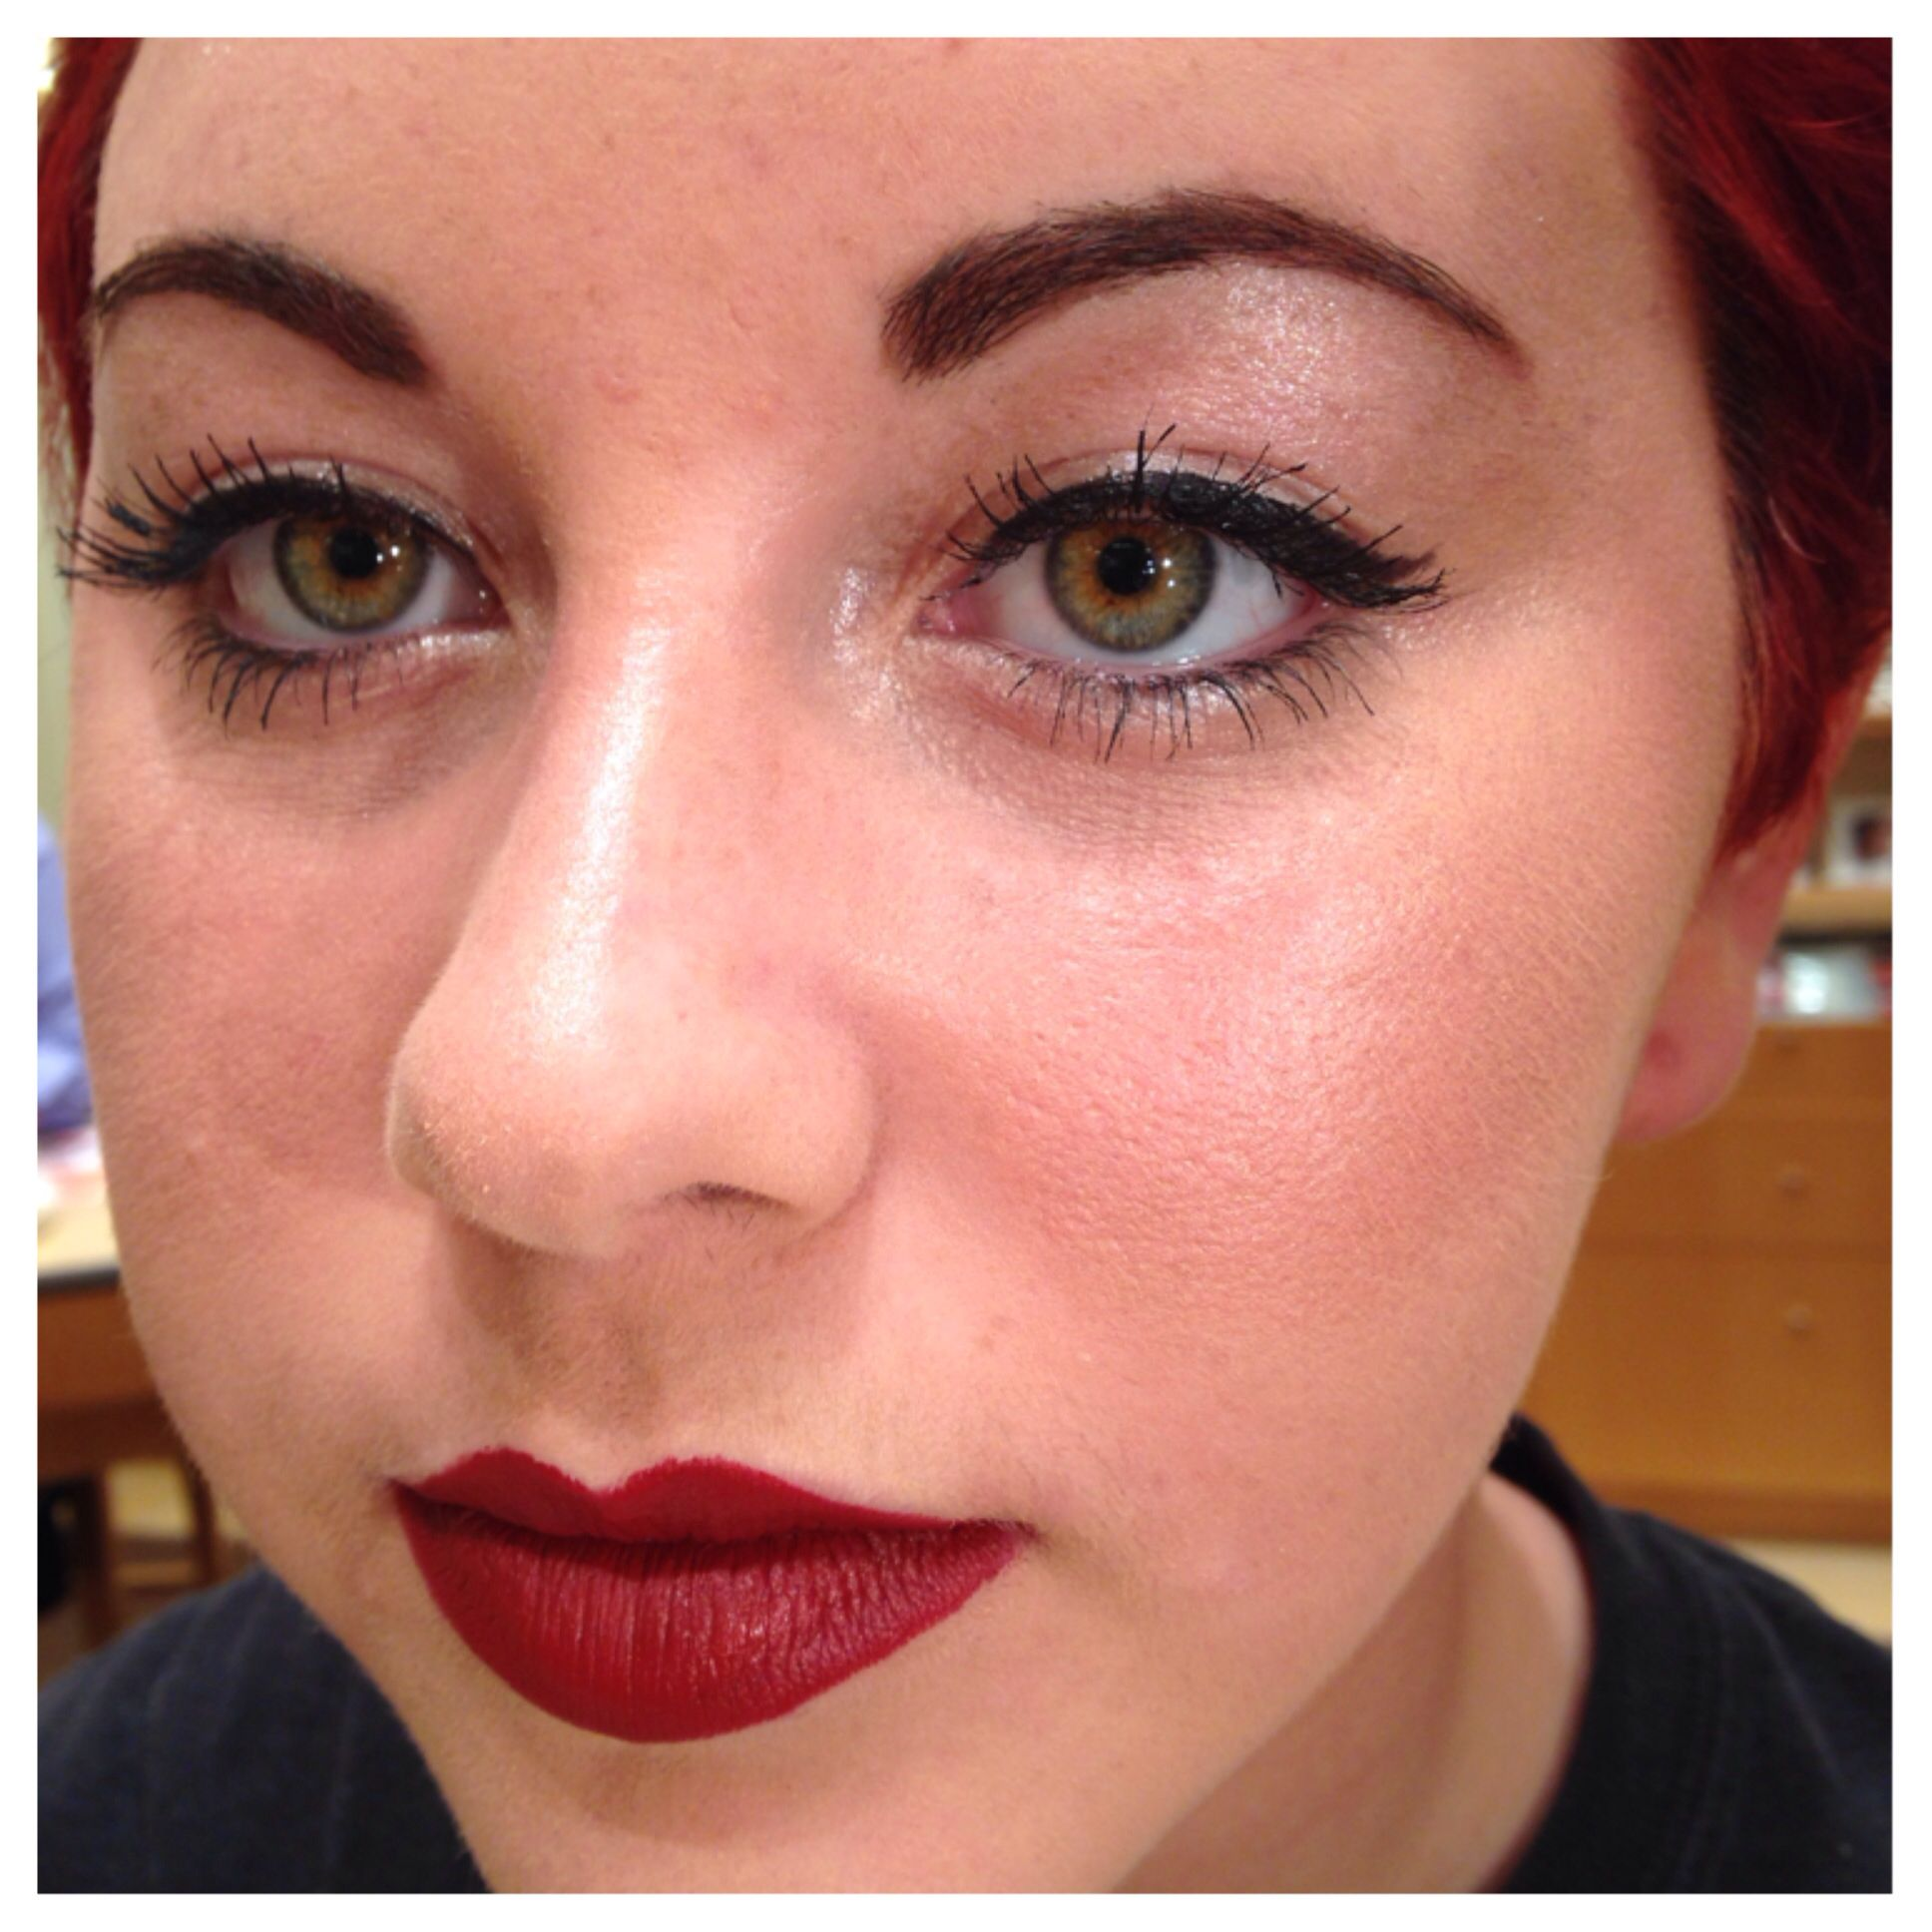 Merle Norman glossy bare eye and deep red lips and glowy